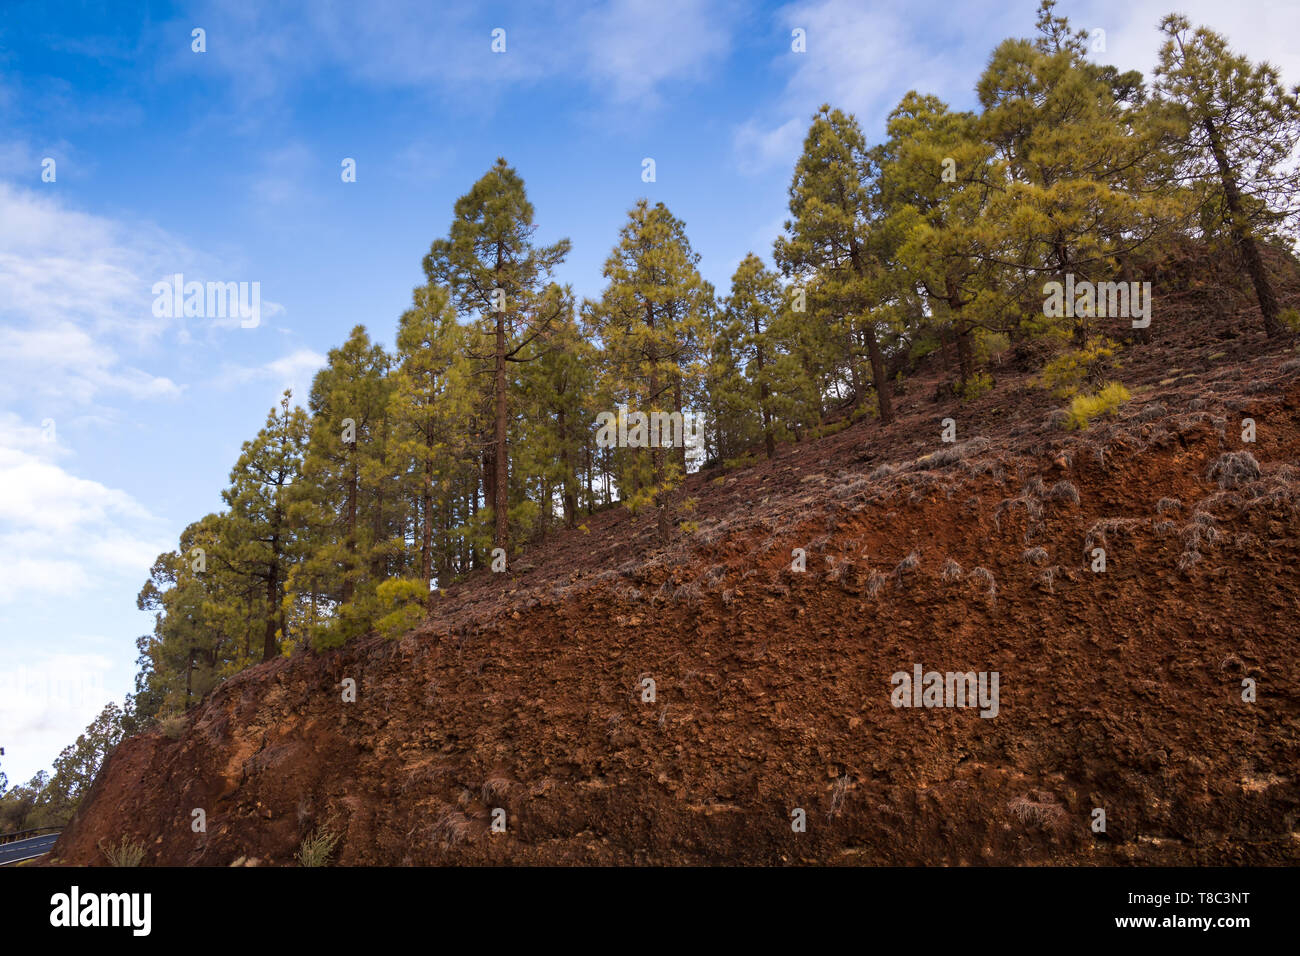 Road in Teide National Park, lined by hills with forests, created mostly by pines. Morning blue sky with white clouds. Tenerife, Canary Islands, Spain - Stock Image